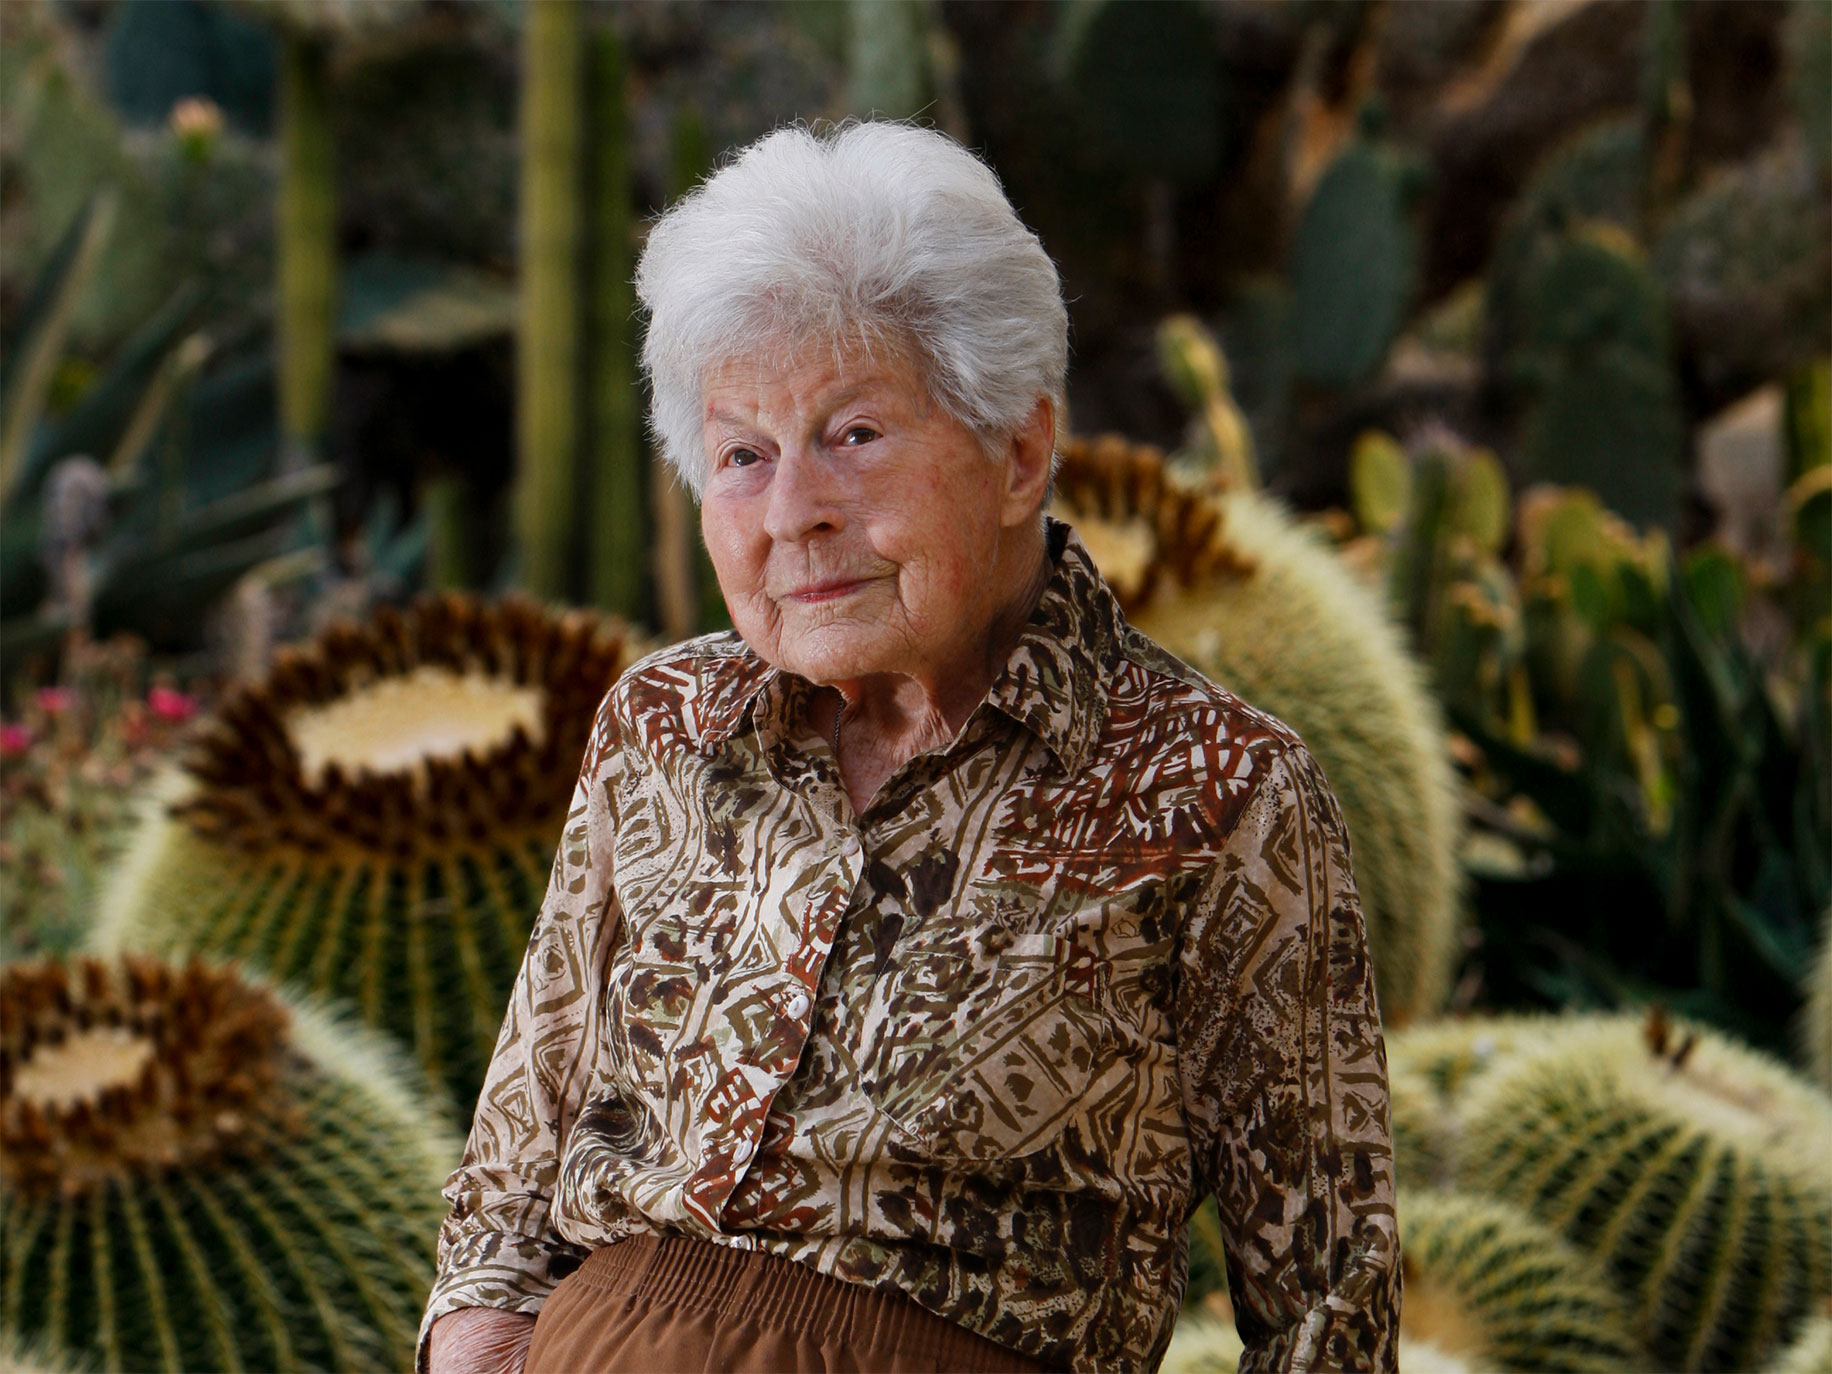 ERIC LUSE/SAN FRANCISCO CHRONICLE  Ruth Bancroft, just before her 100th birthday, in her cactus and succulent garden in Walnut Creek.